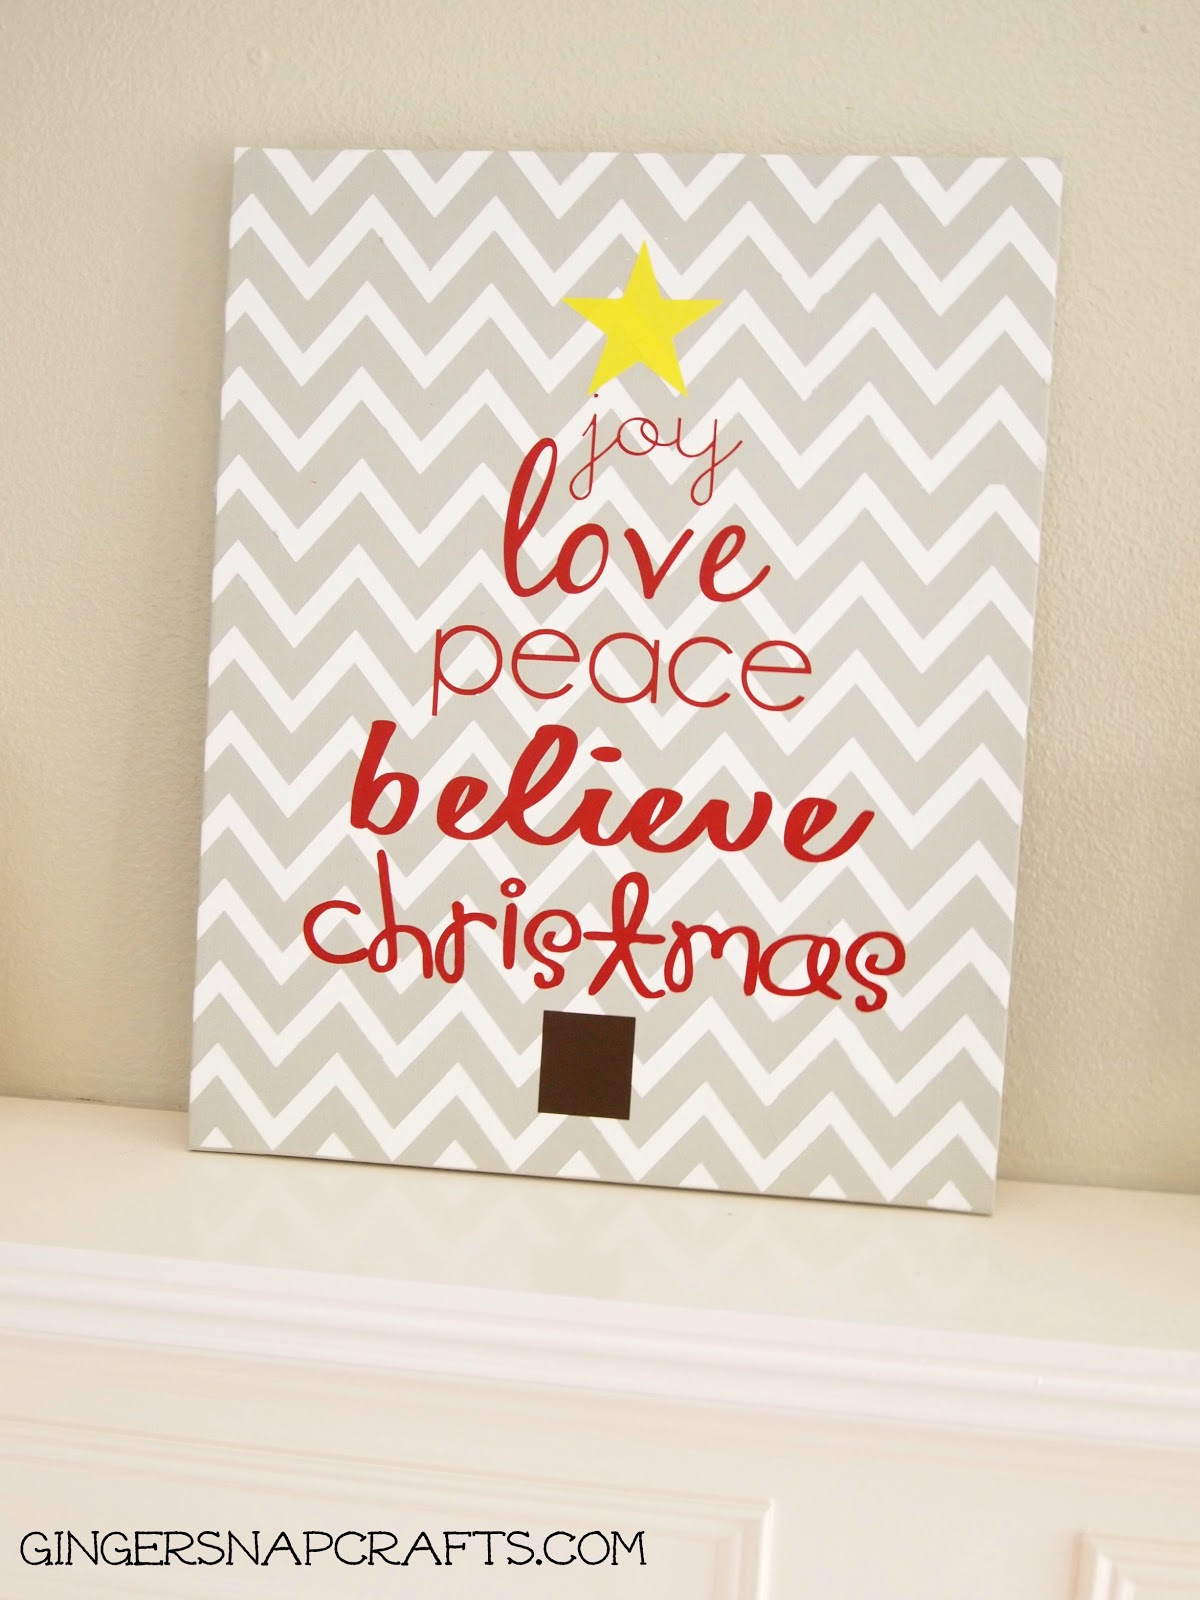 Ginger snap crafts easy knock off christmas art tutorial for Christmas canvas painting ideas